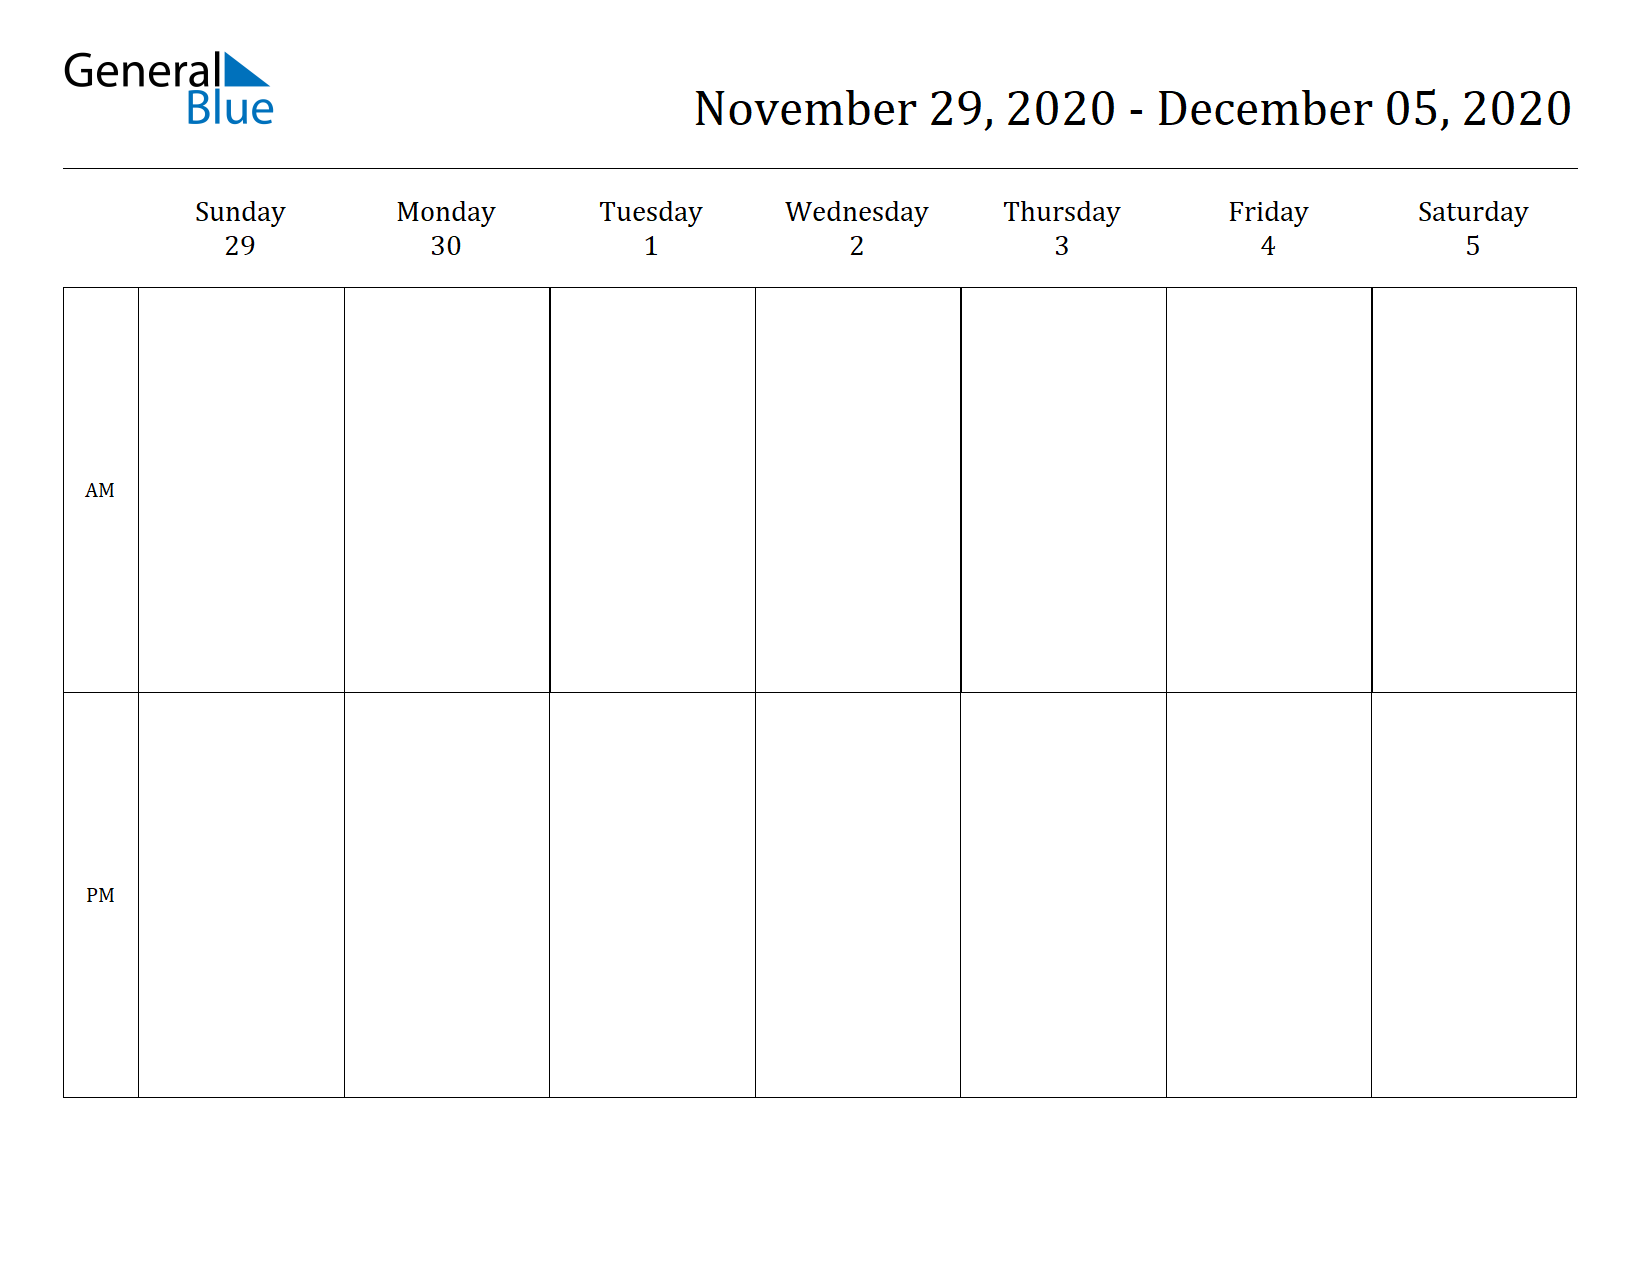 Weekly Calendar for Nov 29, 2020 to Dec 05, 2020